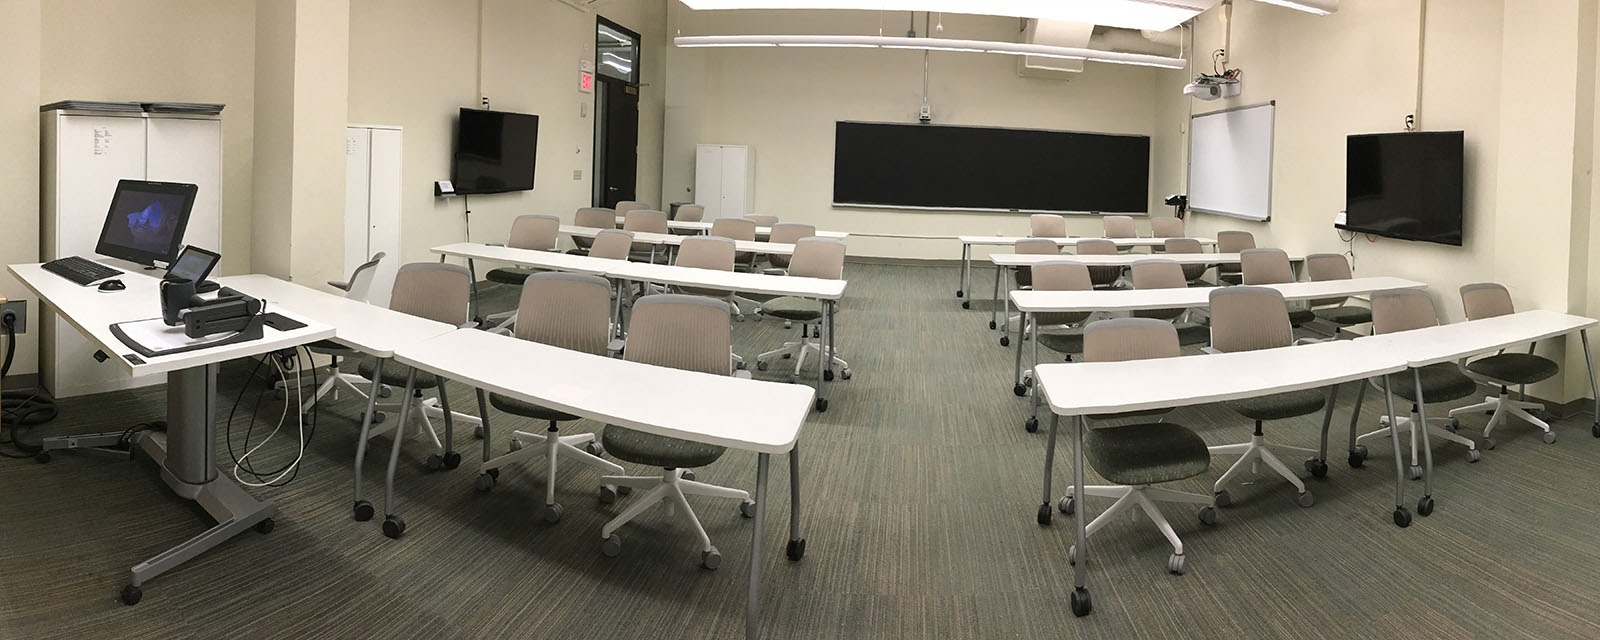 Panorama of Carnegie 120 from front to rear, chairs moveable with tables, teaching station straight across from entrance